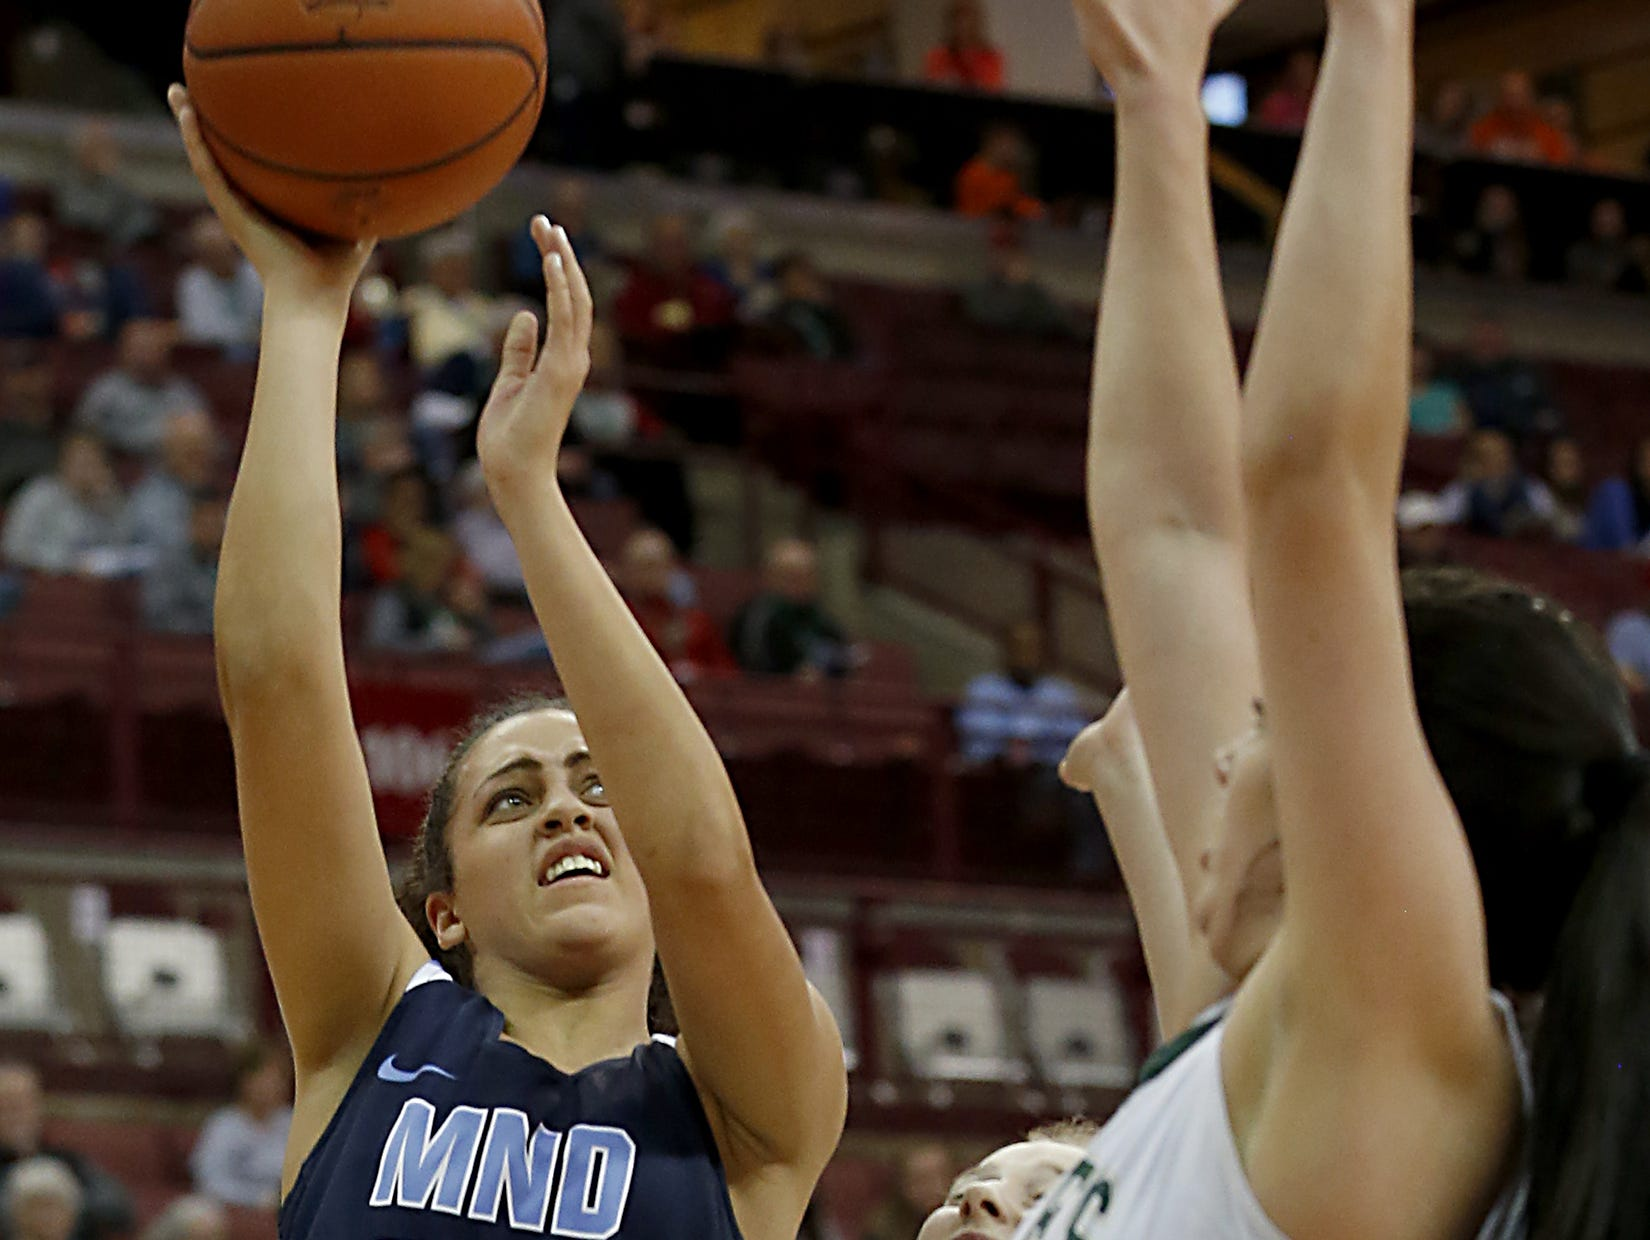 Mount Notre Dame guard Gabbie Marshall scores against GlenOak during their Division I semifinal game in the 44th Annual State Girls Basketball Tournament at the Schottenstein Center in Columbus Friday, March 15, 2019.